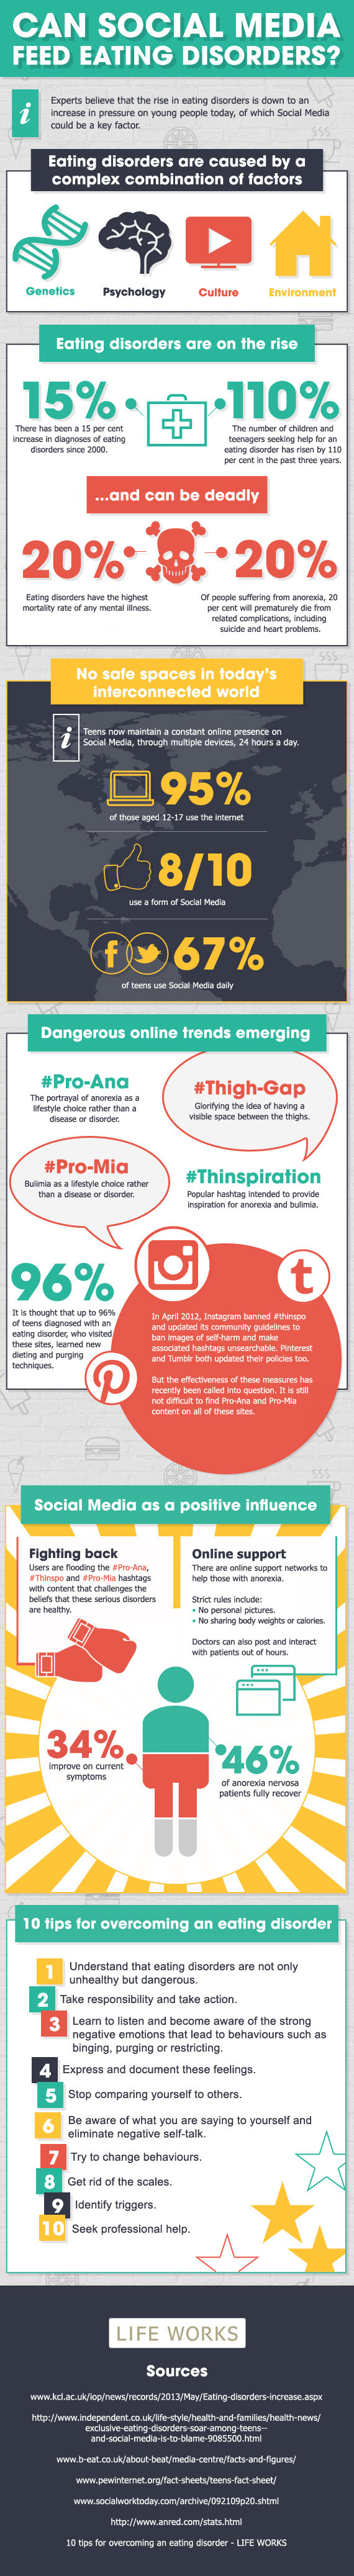 Can Social Media Feed Eating Disorders - infographic